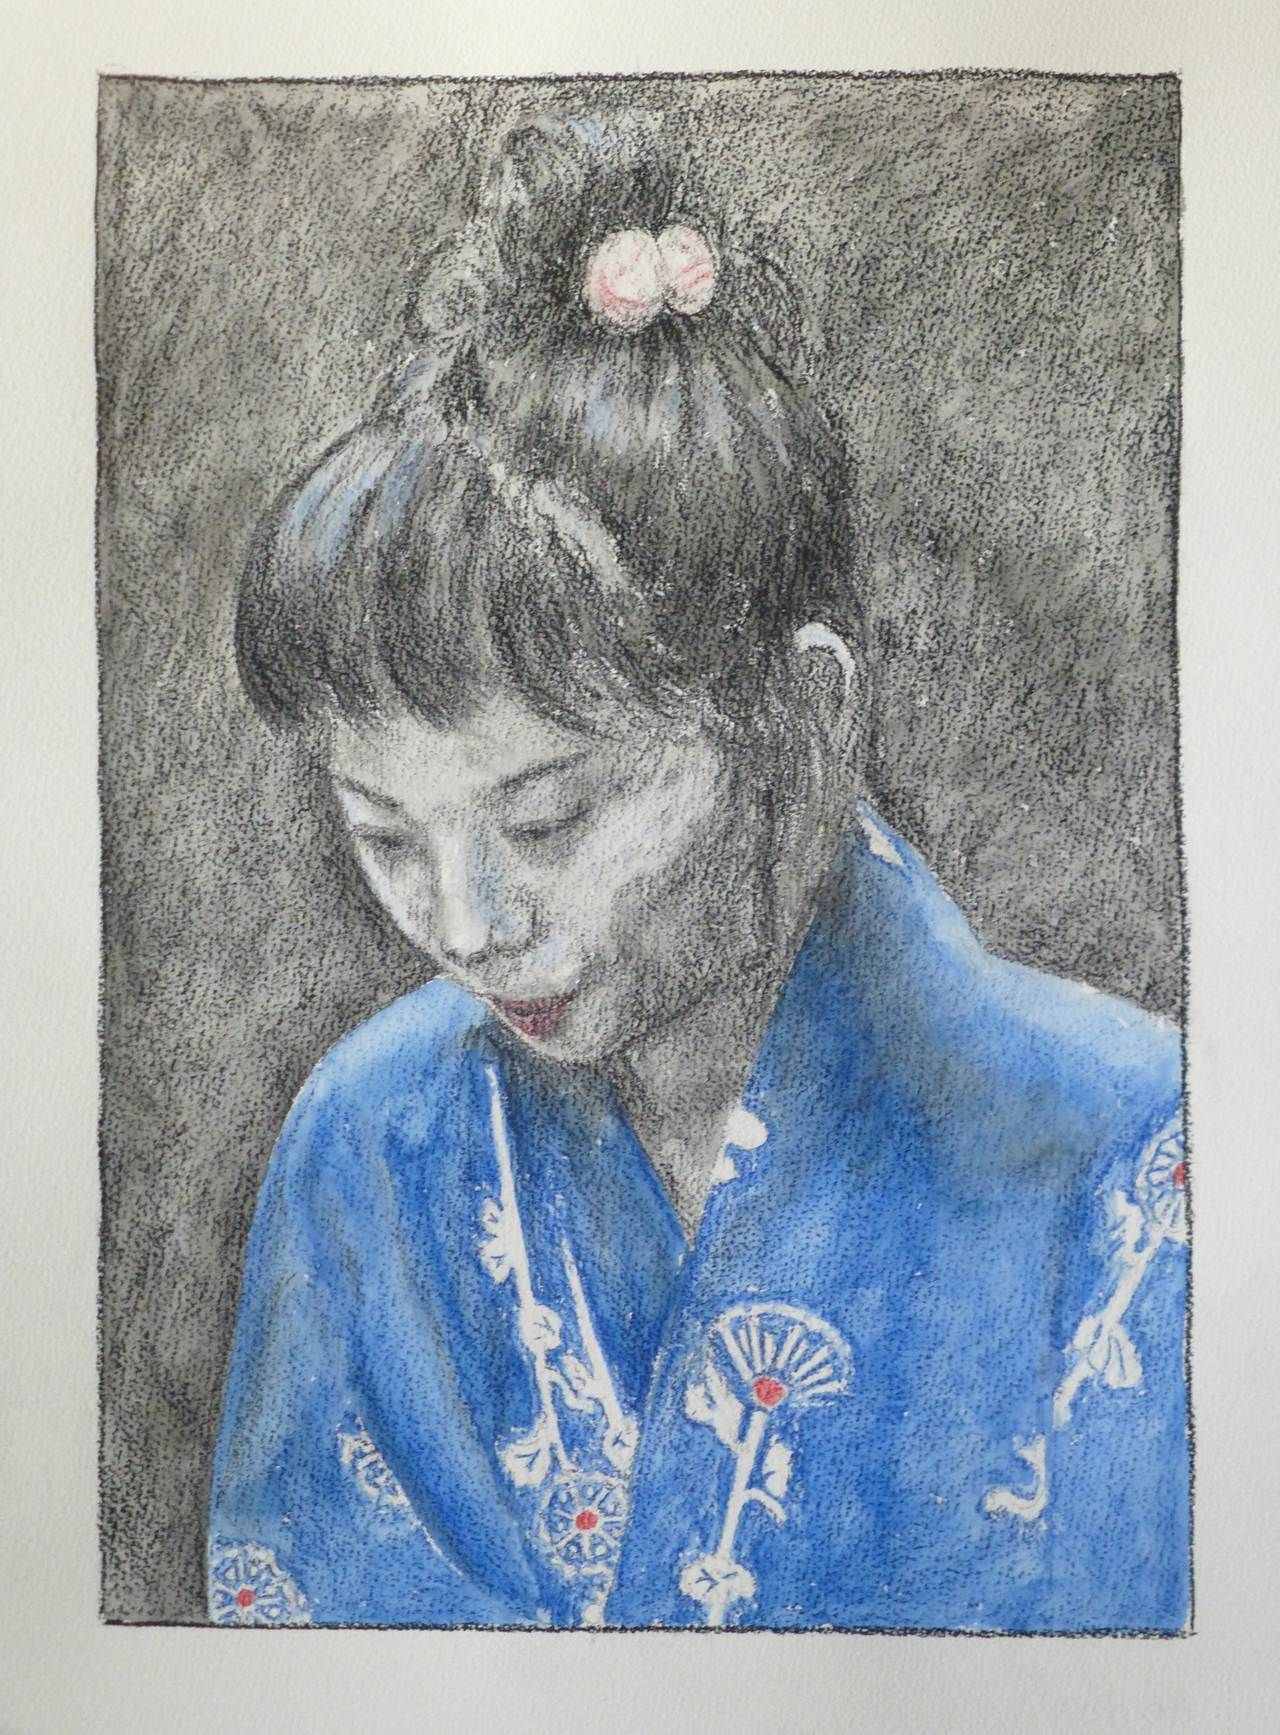 Drawing of a torso at a three-quarters angle of a young Japanese girl in a yukata with stylised motif of flowers. The yukata is tinted blue with watercolour, the flowers are white with a pink accent. The person is looking down at something in front of her. Her hair is tied up on top with a hair elastic with two white ponpons with some pink. The background is dark.